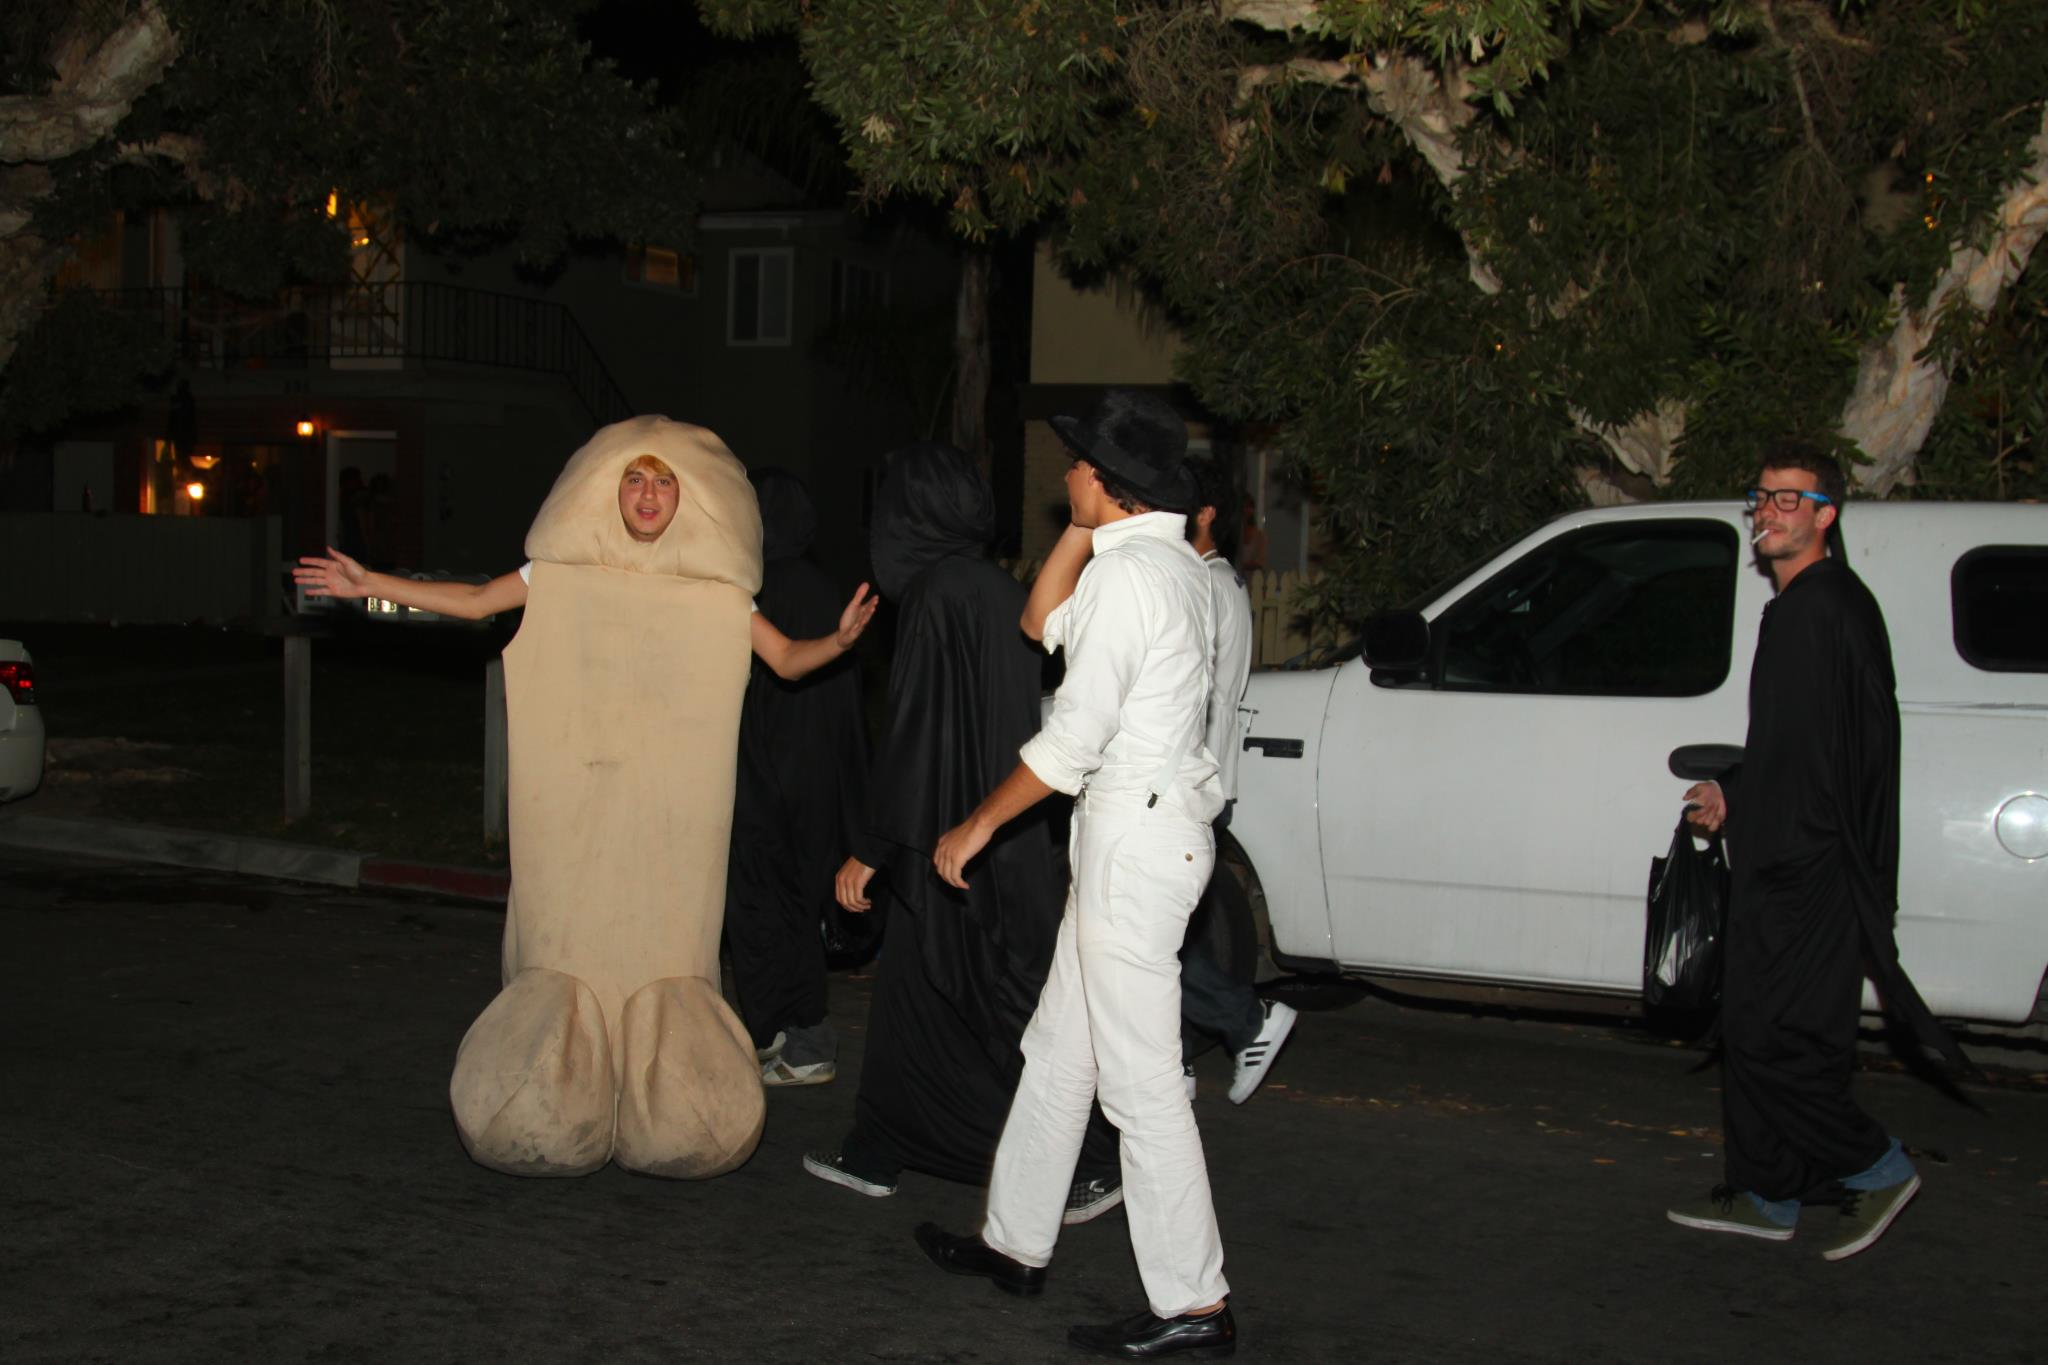 photo gallery: ucsb isla vista halloween 2011 | the bottom line